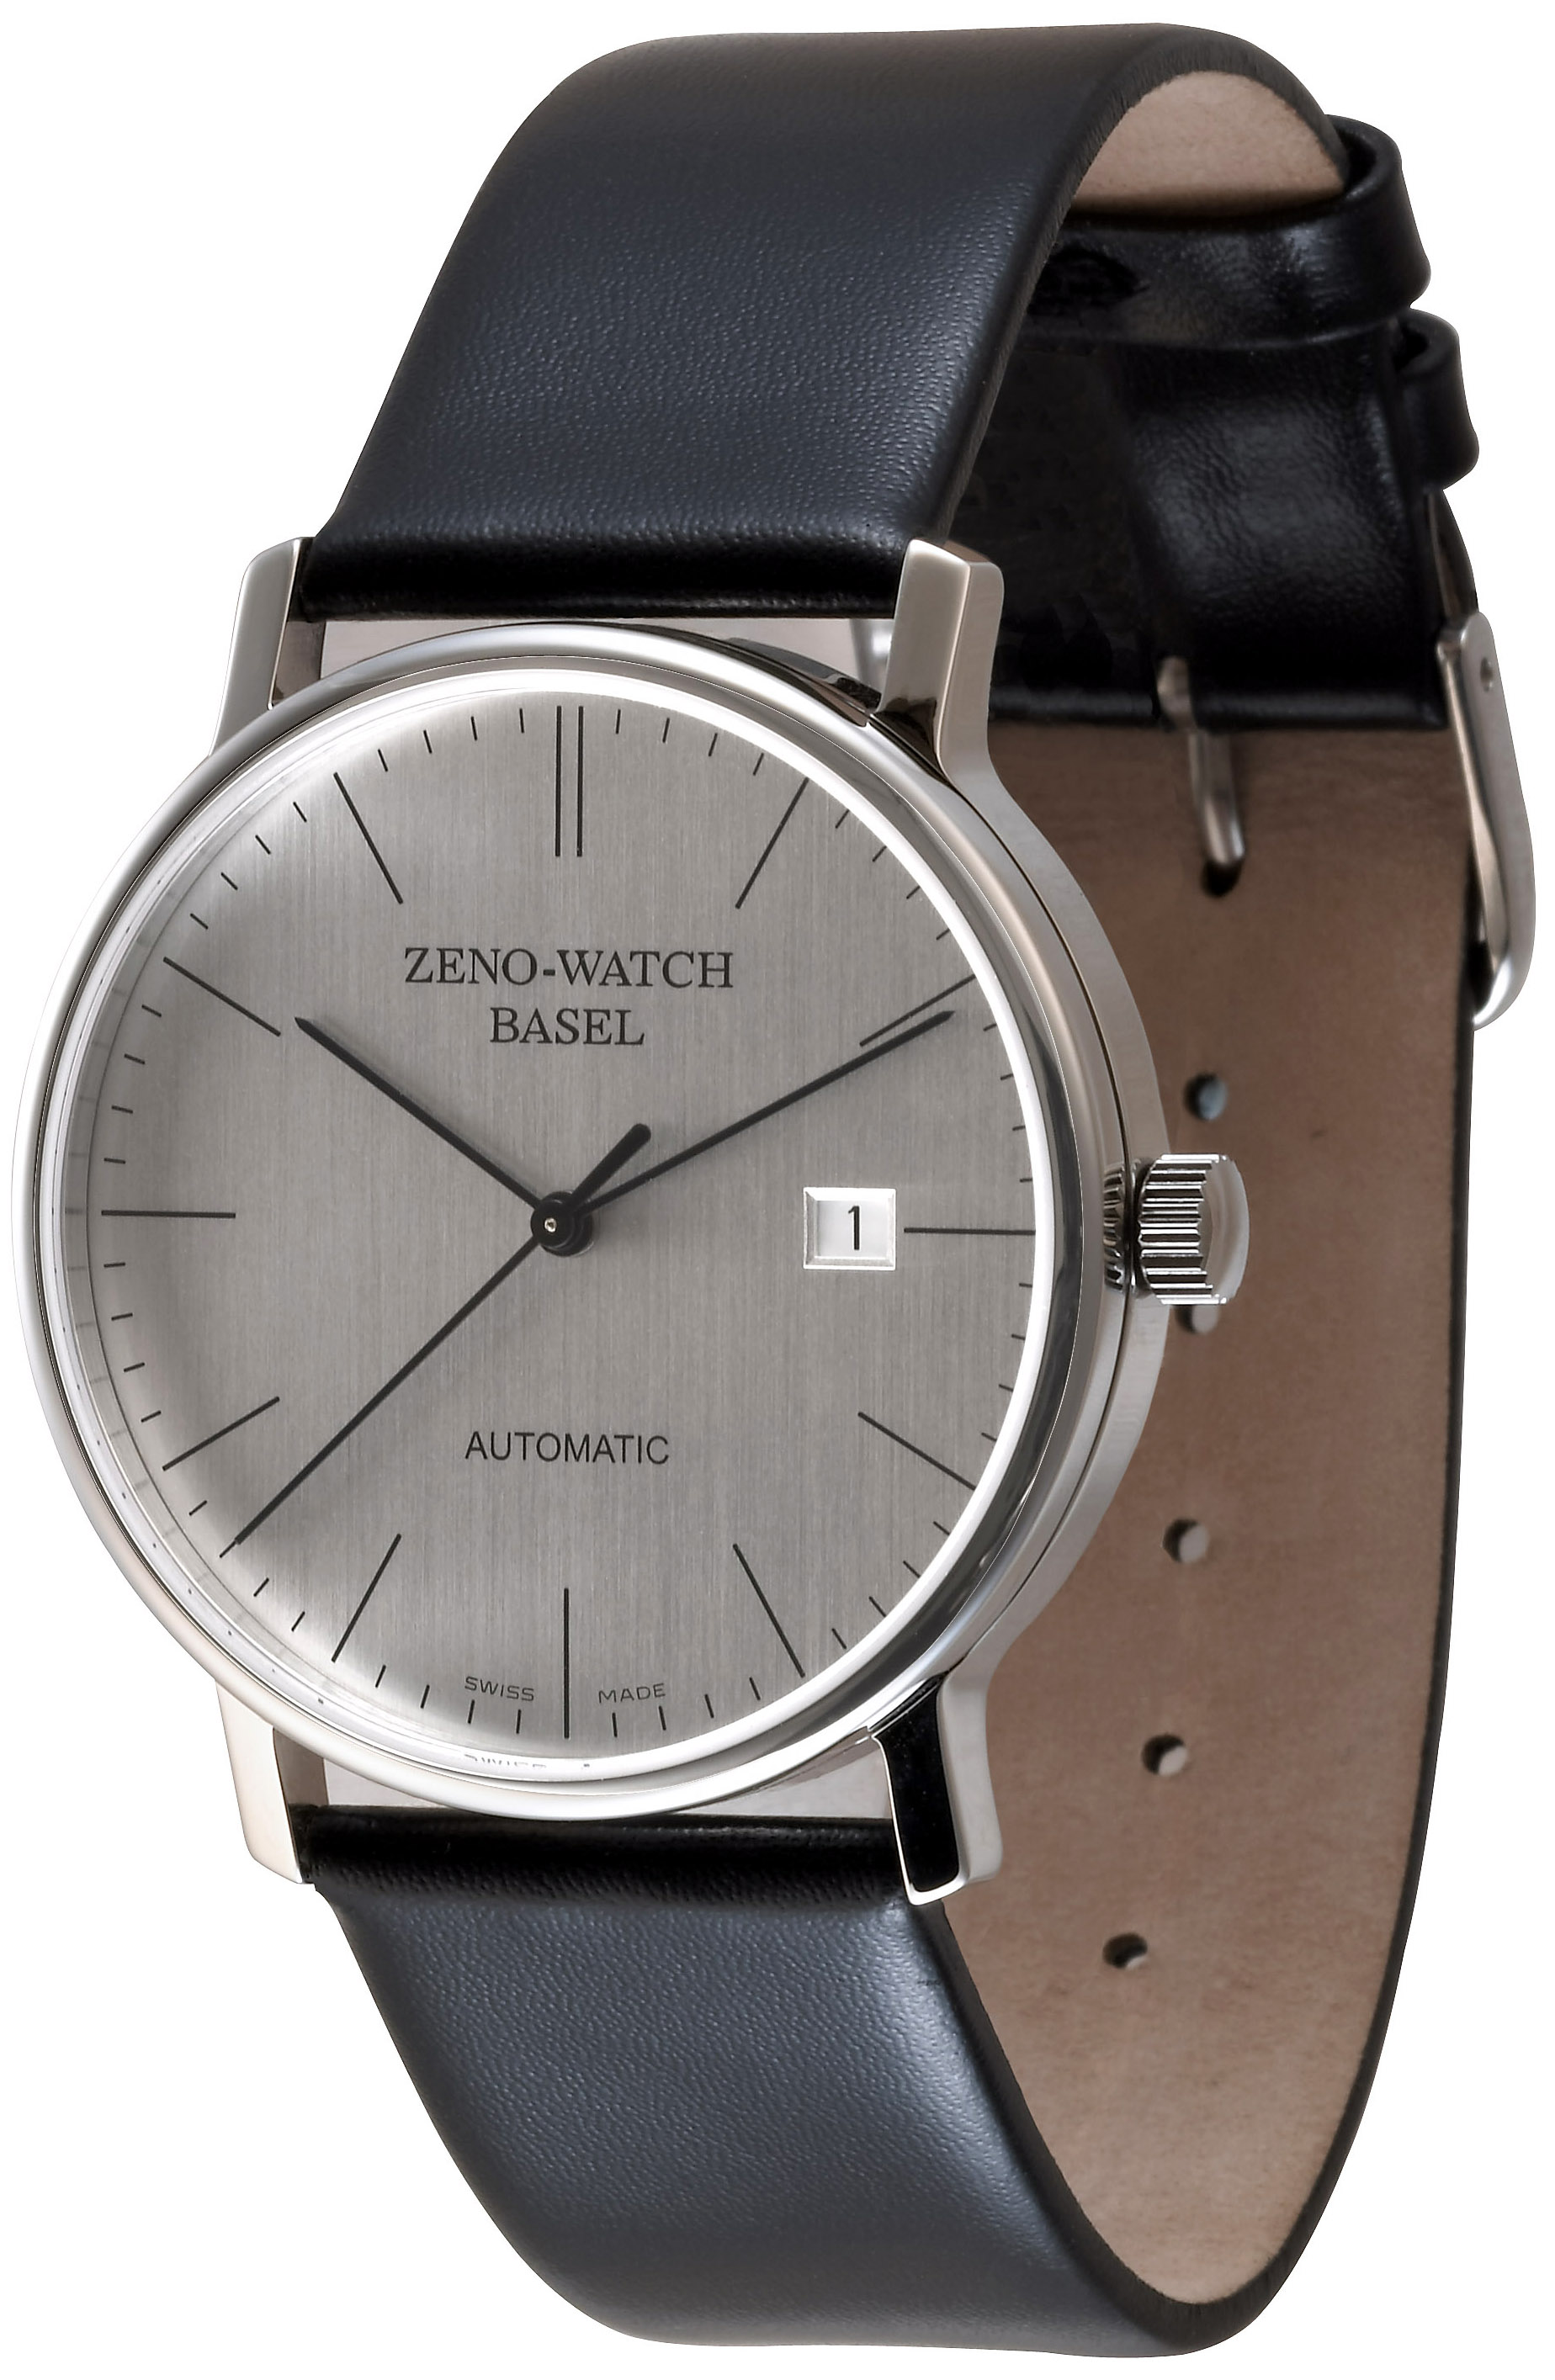 roundup watch bauhaus case review watches back automatic photo rodina reviews